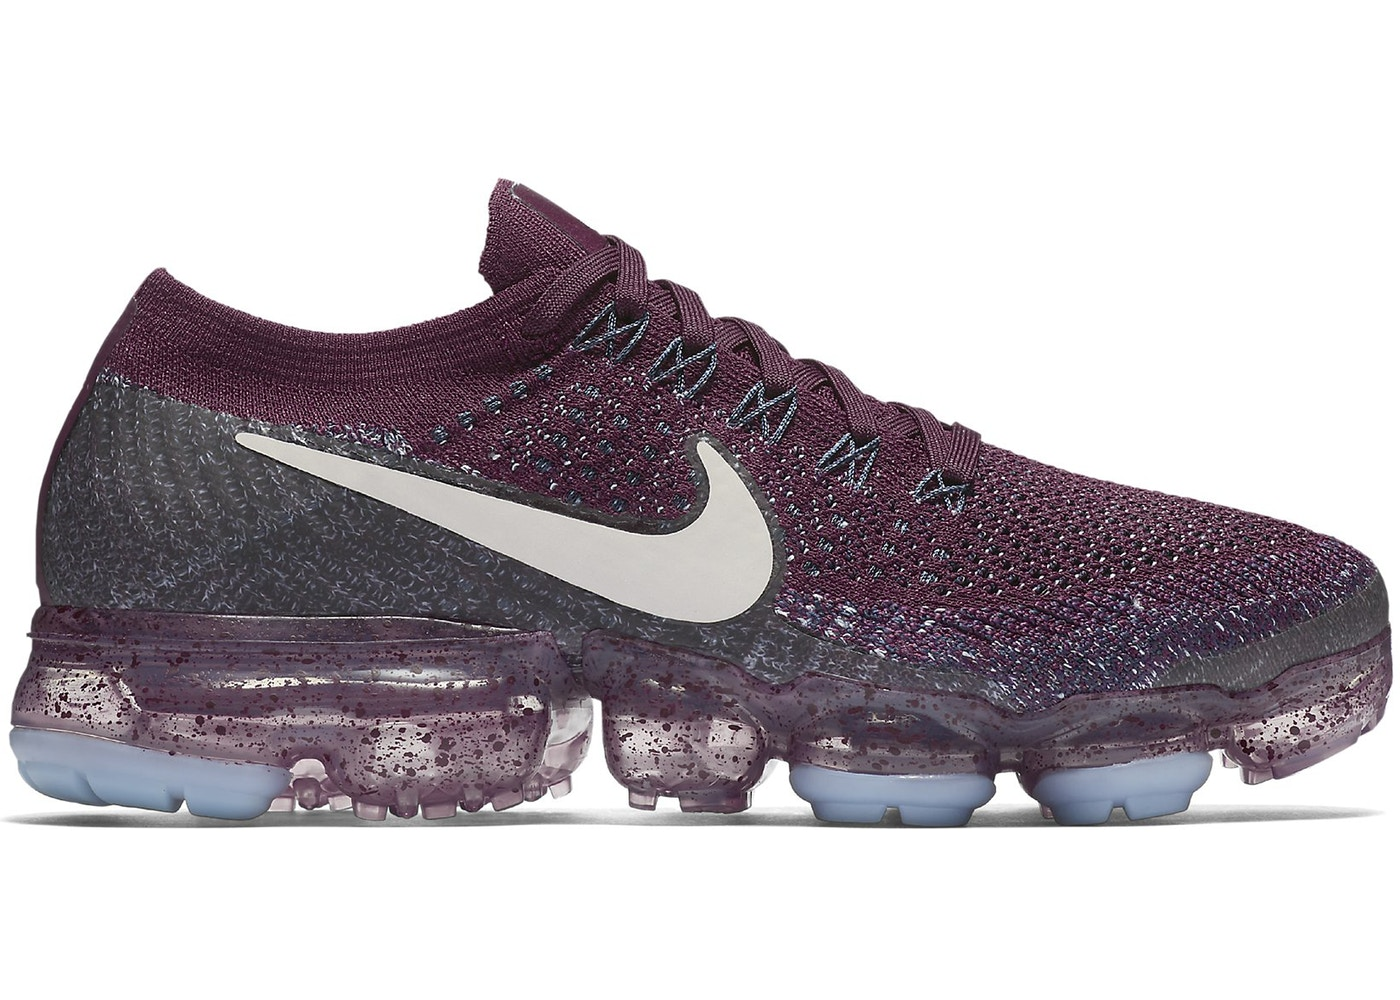 451f8f152672 Air VaporMax Bordeaux (W) - 899472-602